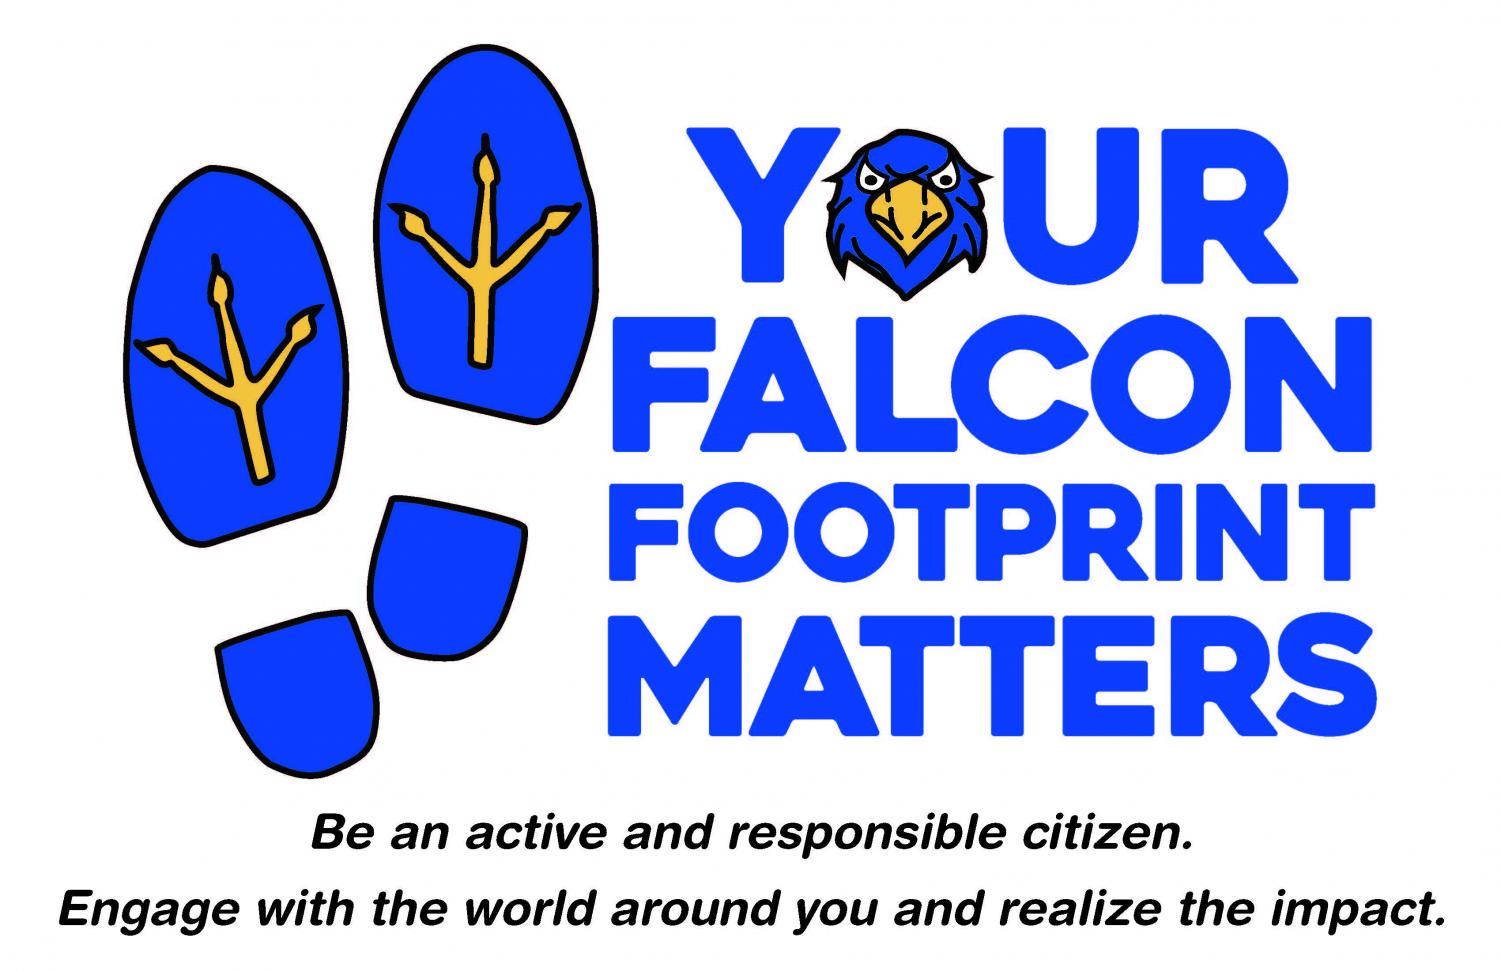 Where will you leave your footprint this year?